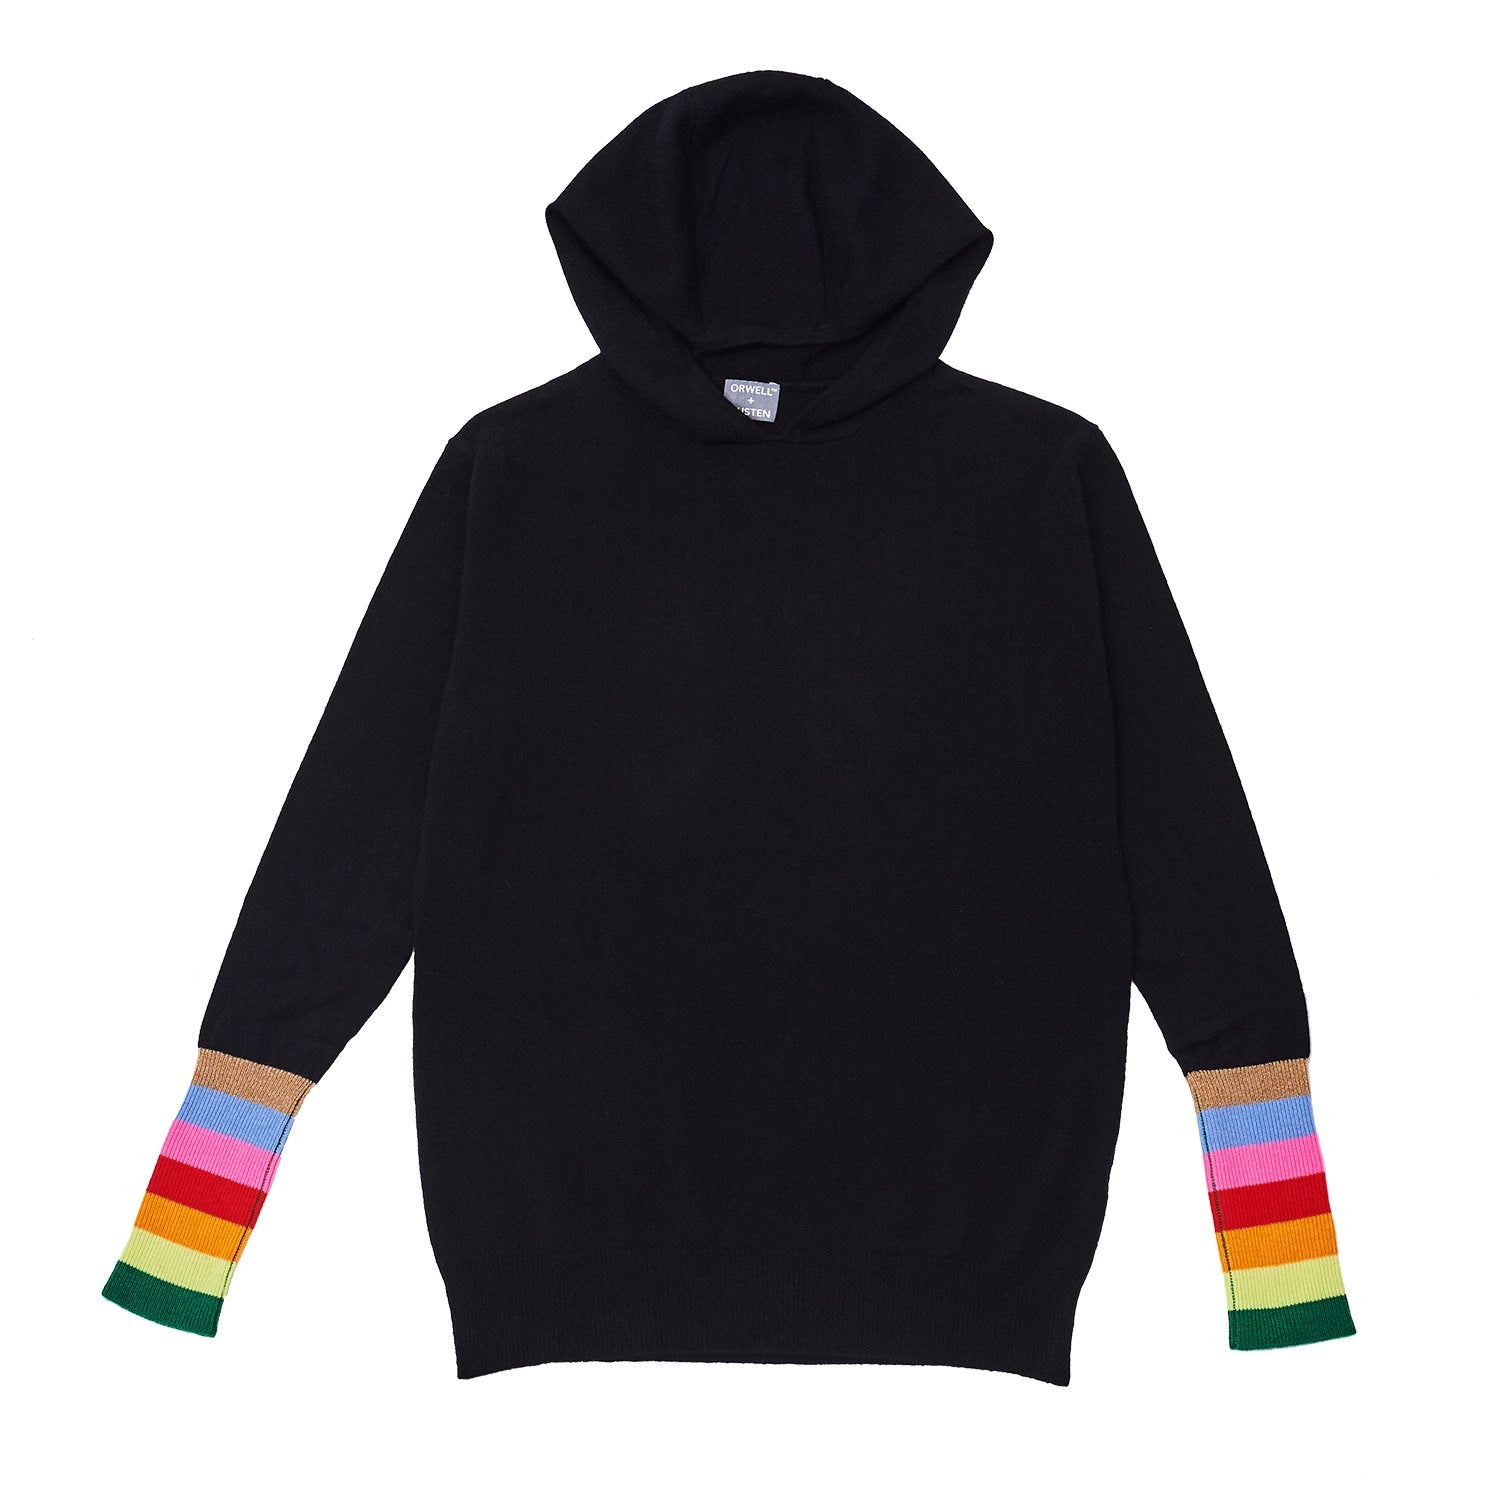 black cashmere and wool blend women's loungewear hoodie with rainbow stripe cuff detail